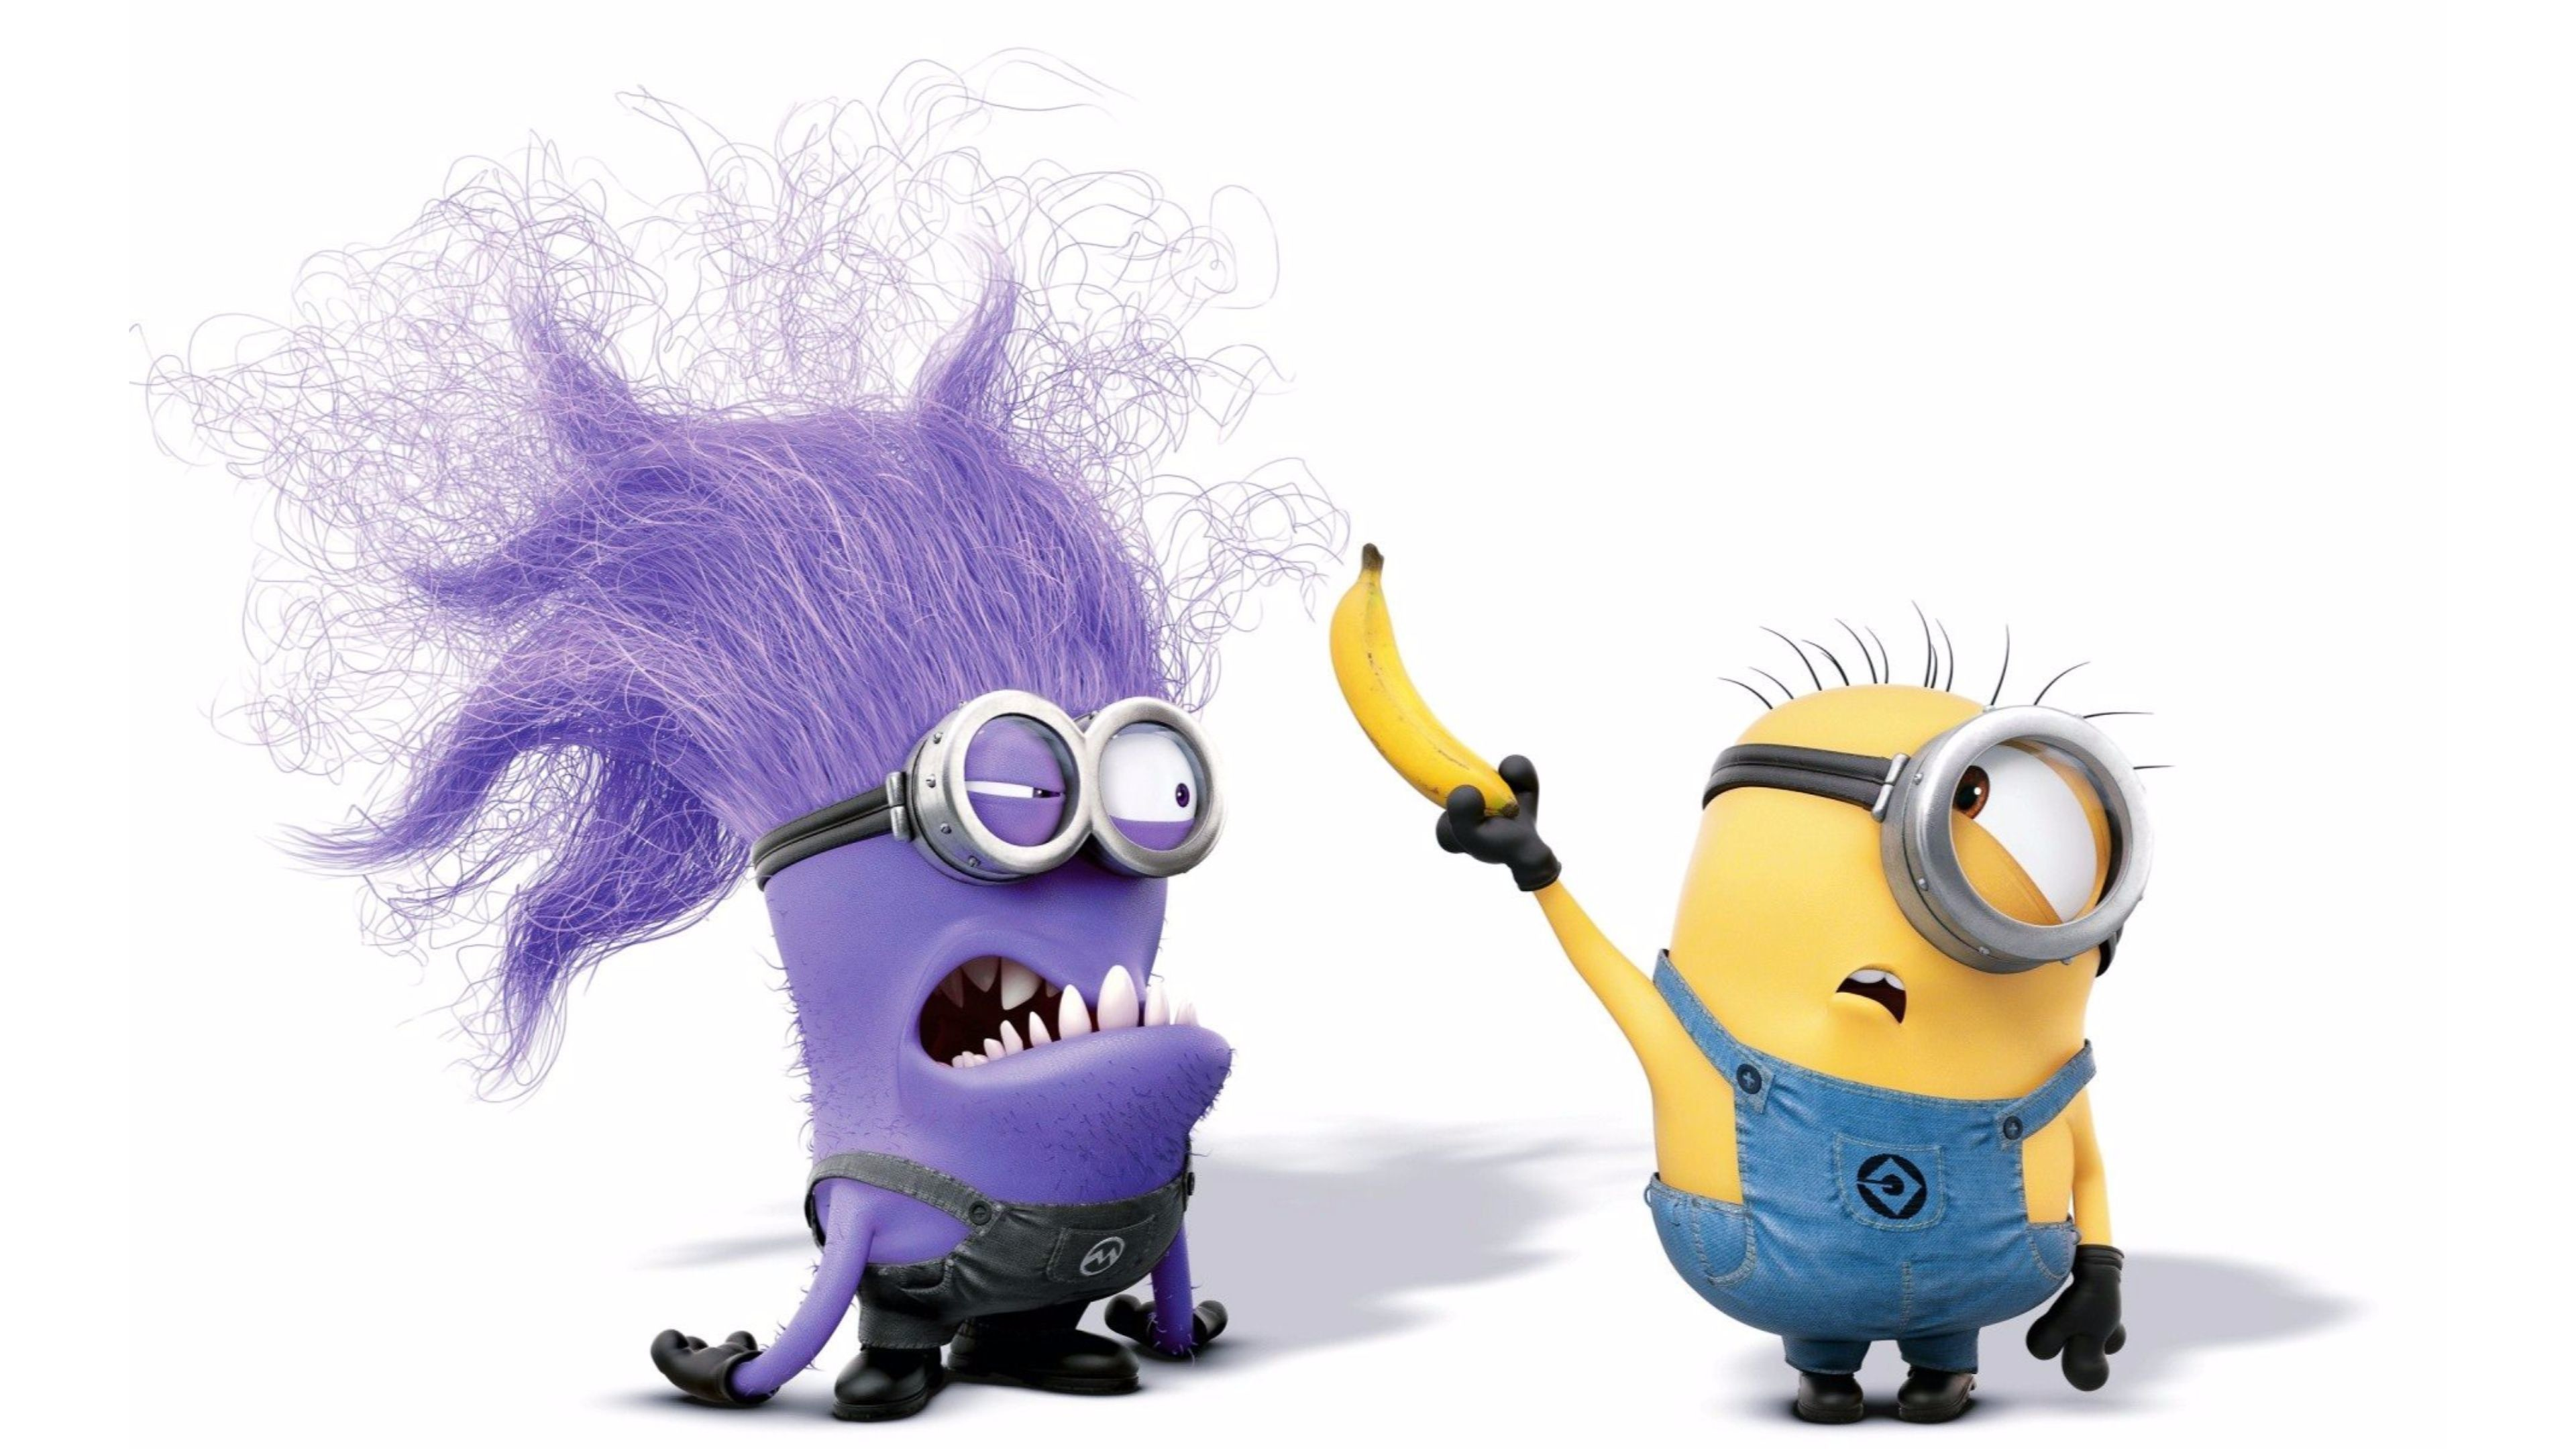 3840x2160 Purple 4K Minions Wallpaper